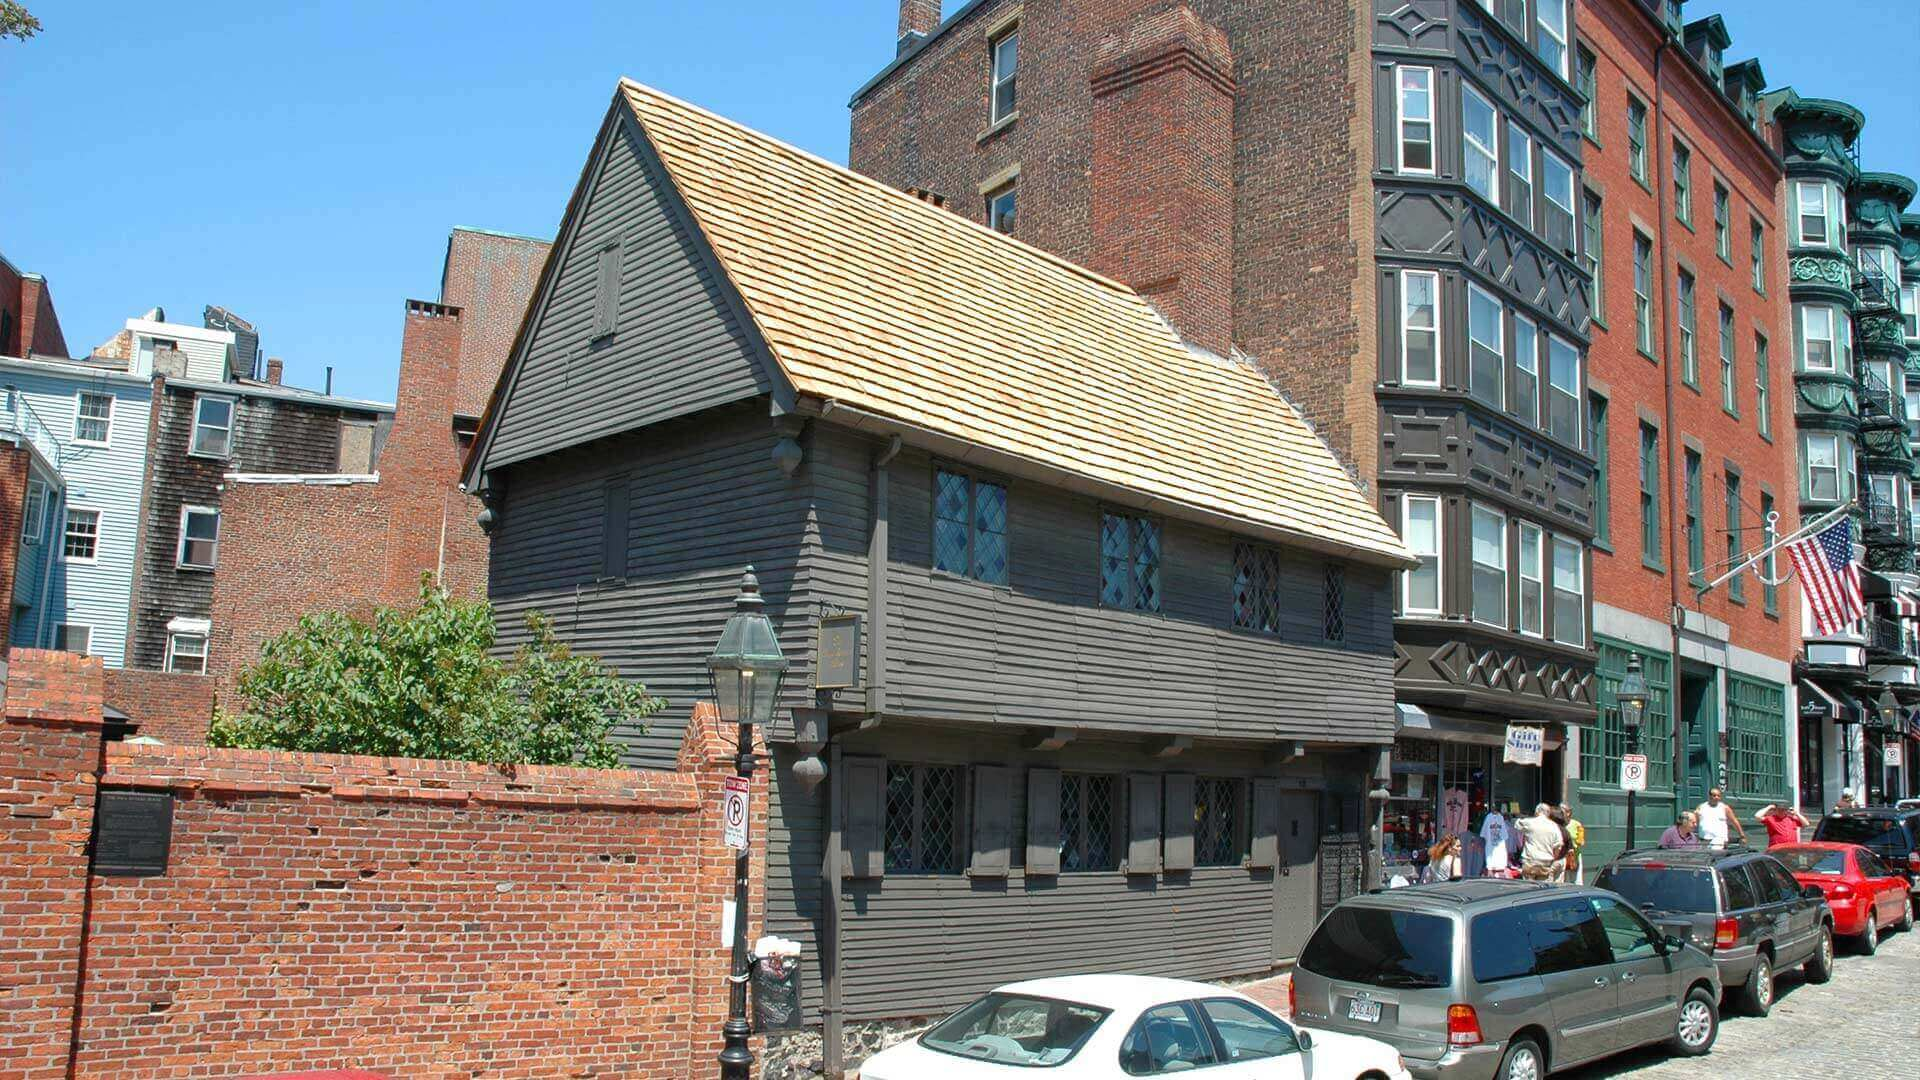 Paul Revere's house in Boston